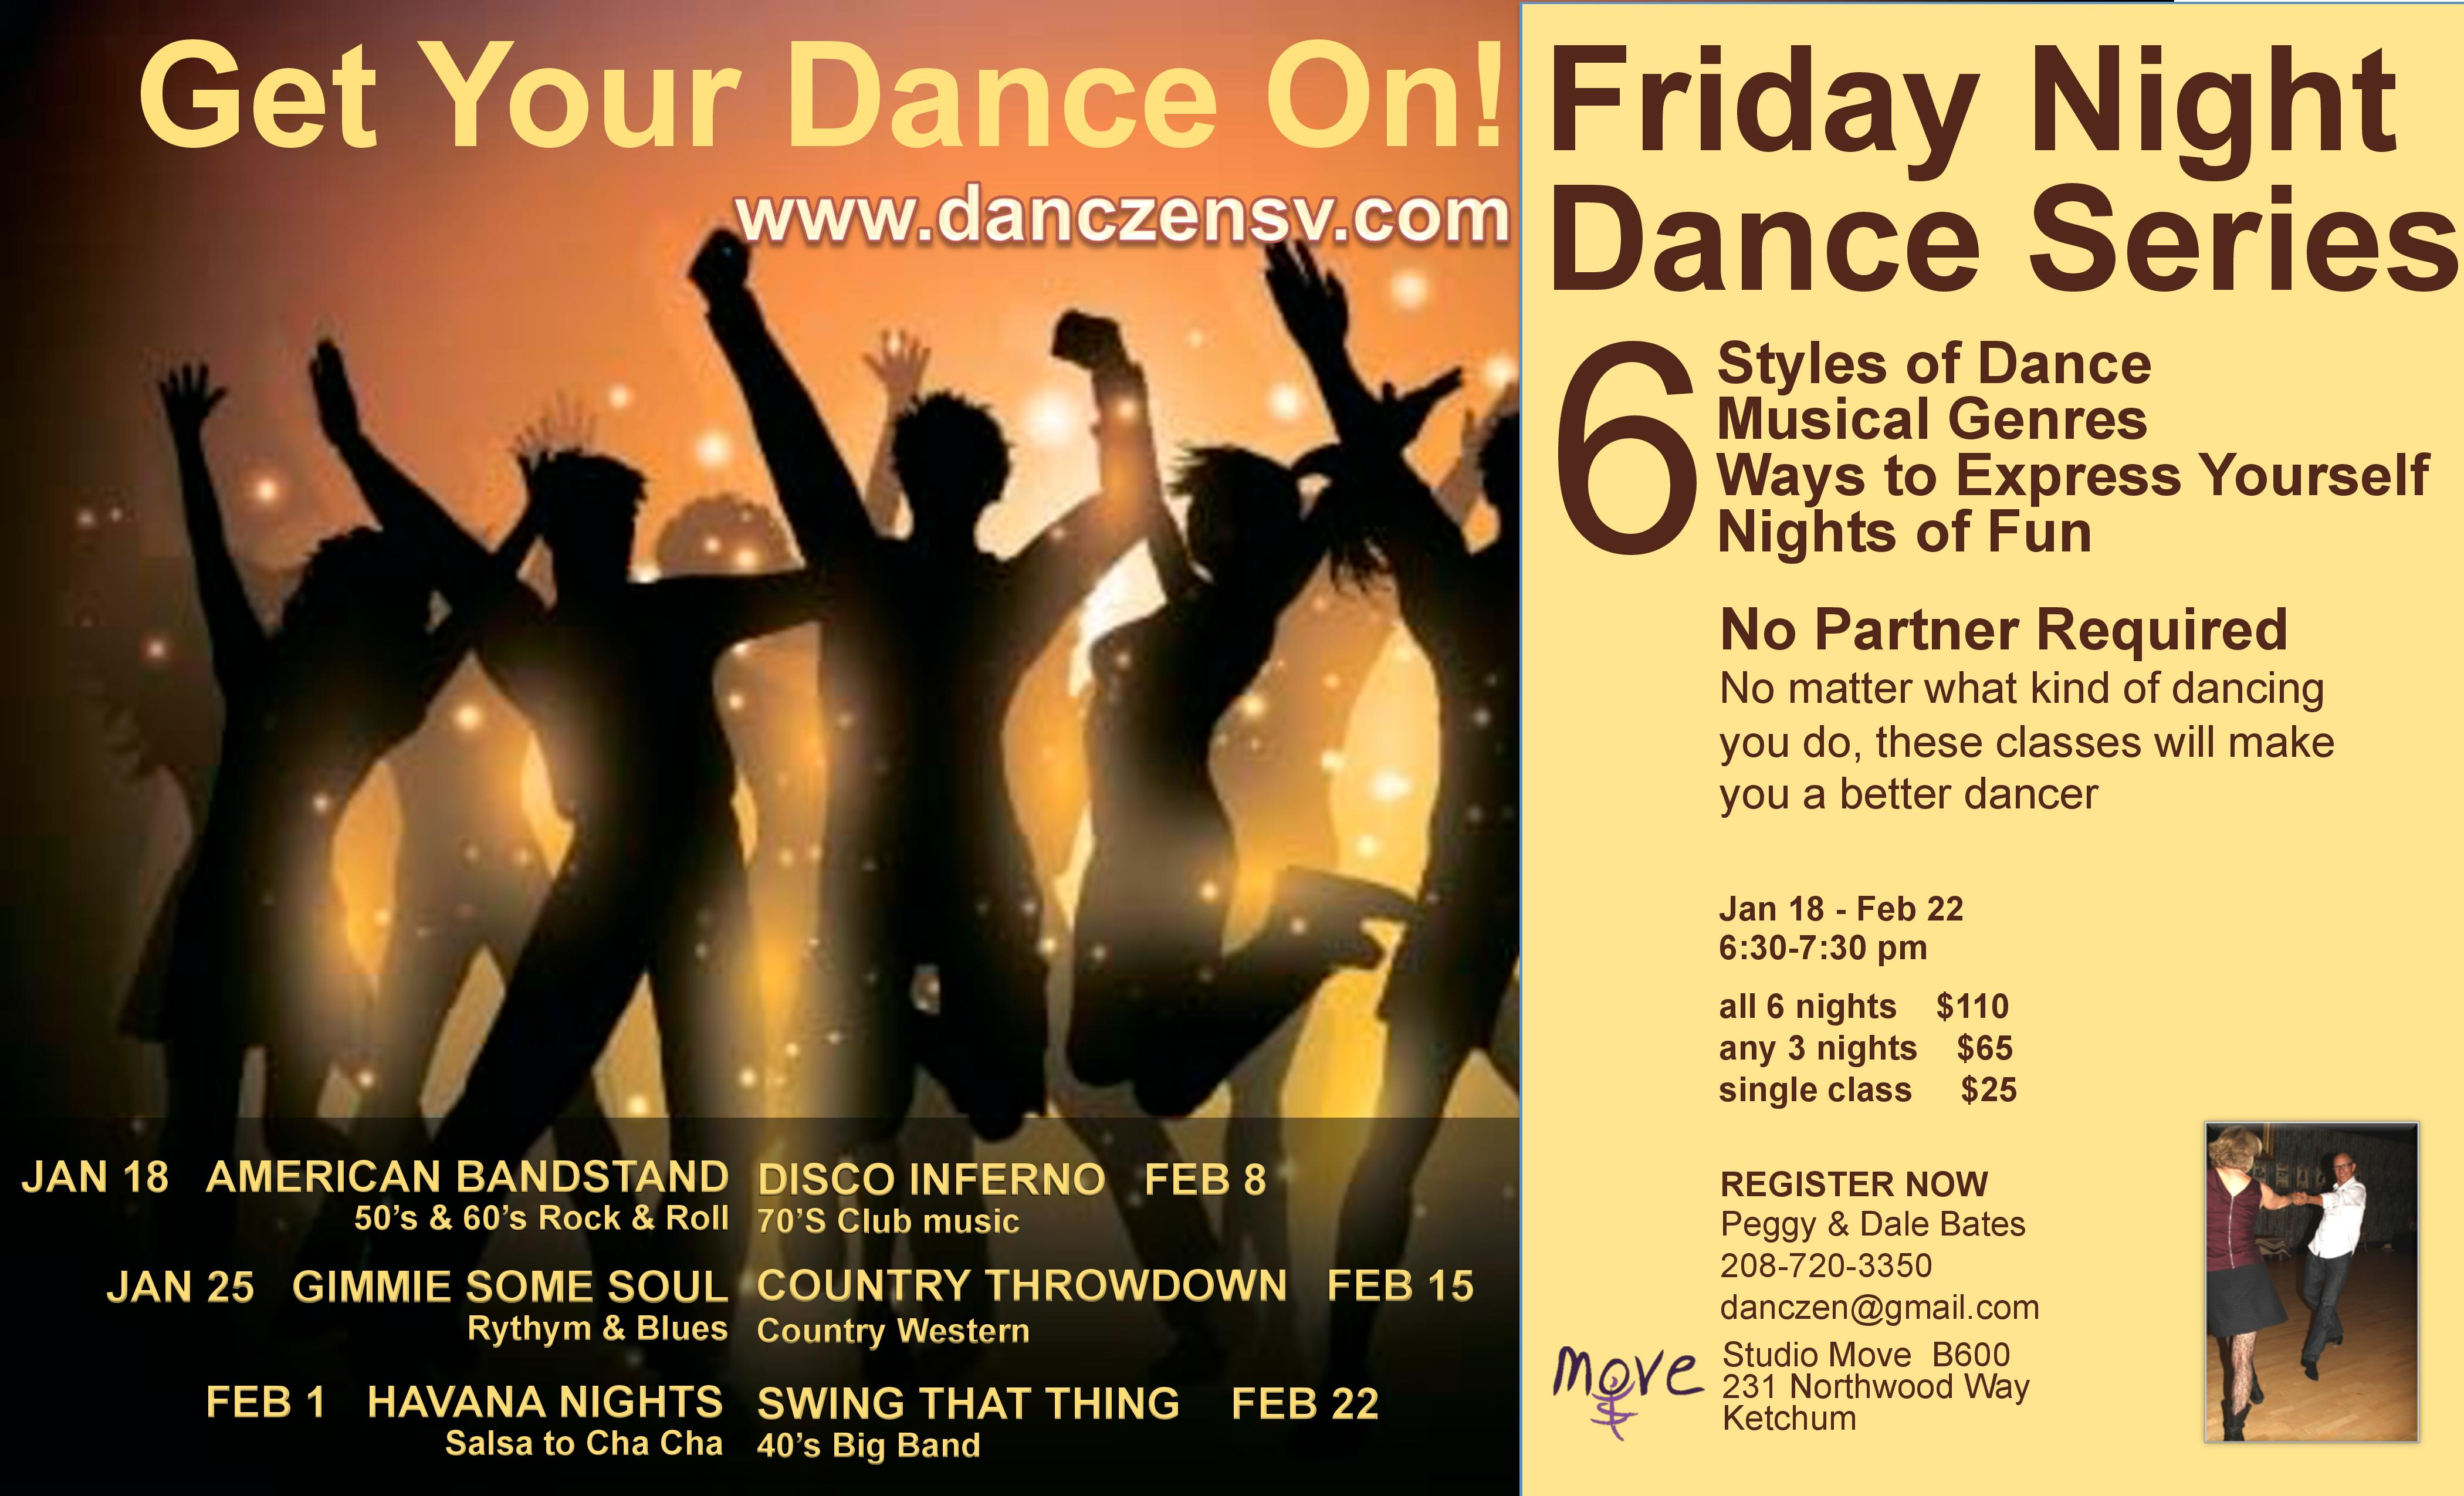 Friday Night Dance Series - Swing That Thing | Visit Sun Valley